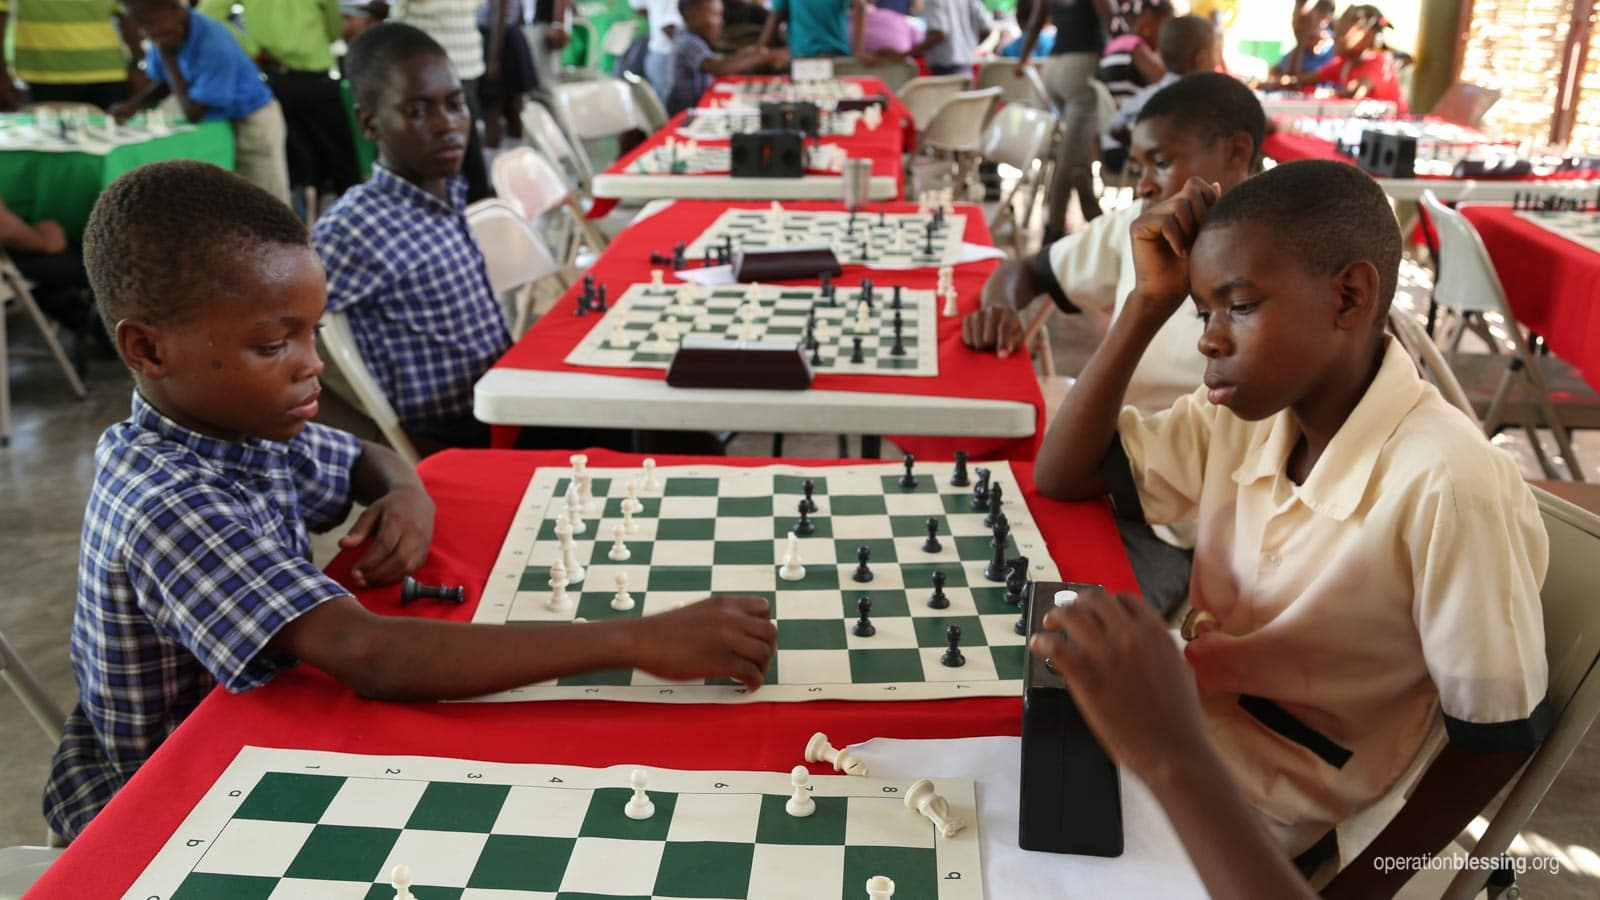 Children learn critical thinking and problem solving skills at chess competition at Operation Blessing's ENLA school in Haiti.